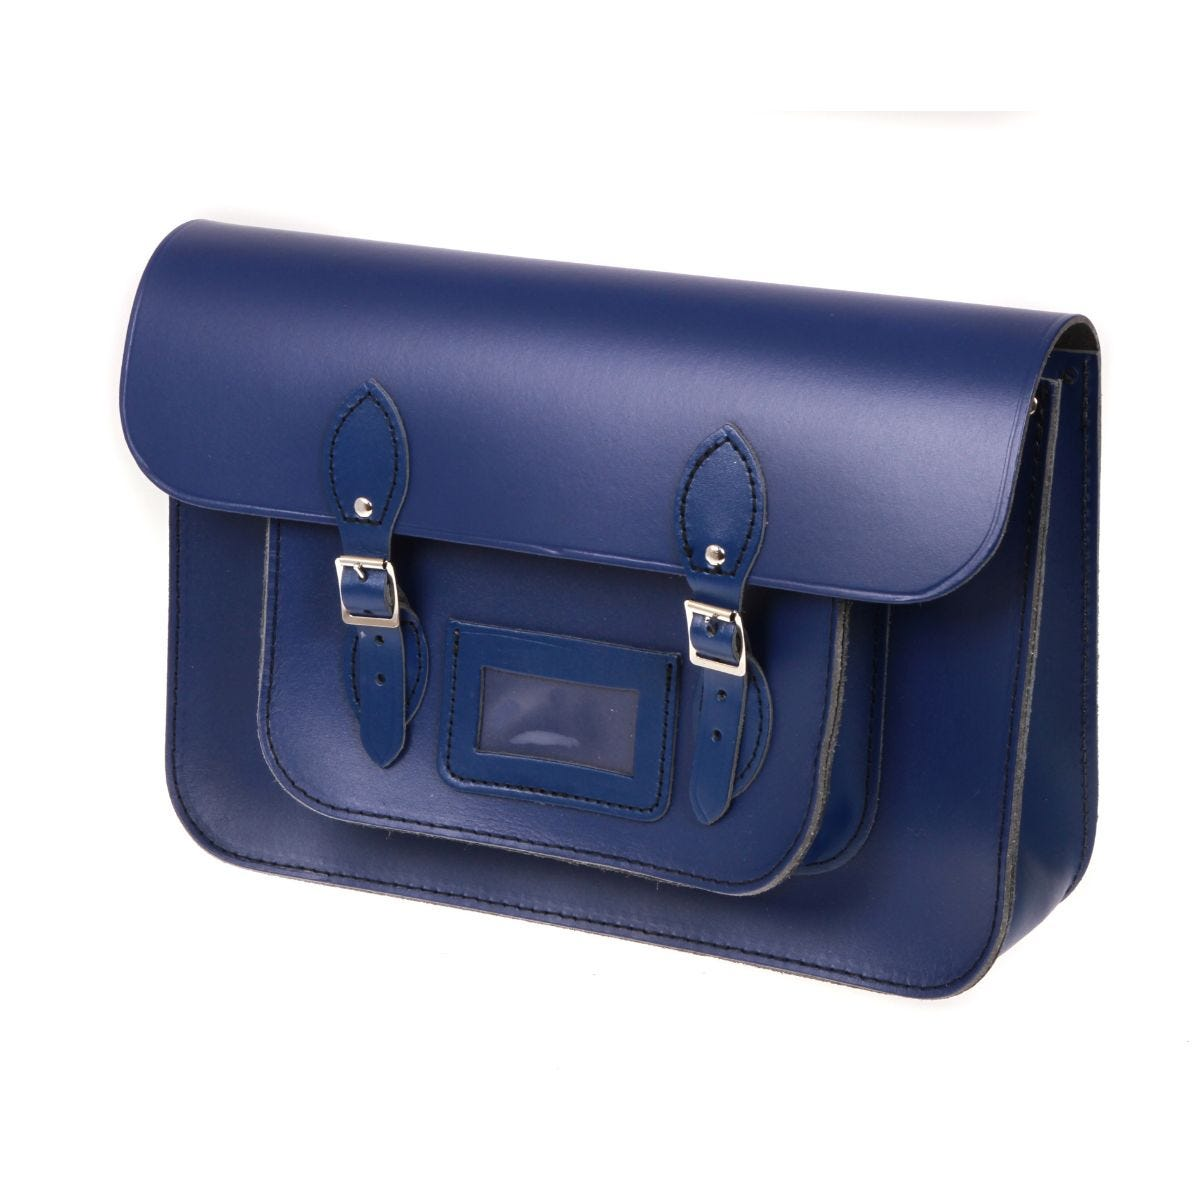 39d3a017767 British Made Recycled Leather Satchel, Blue